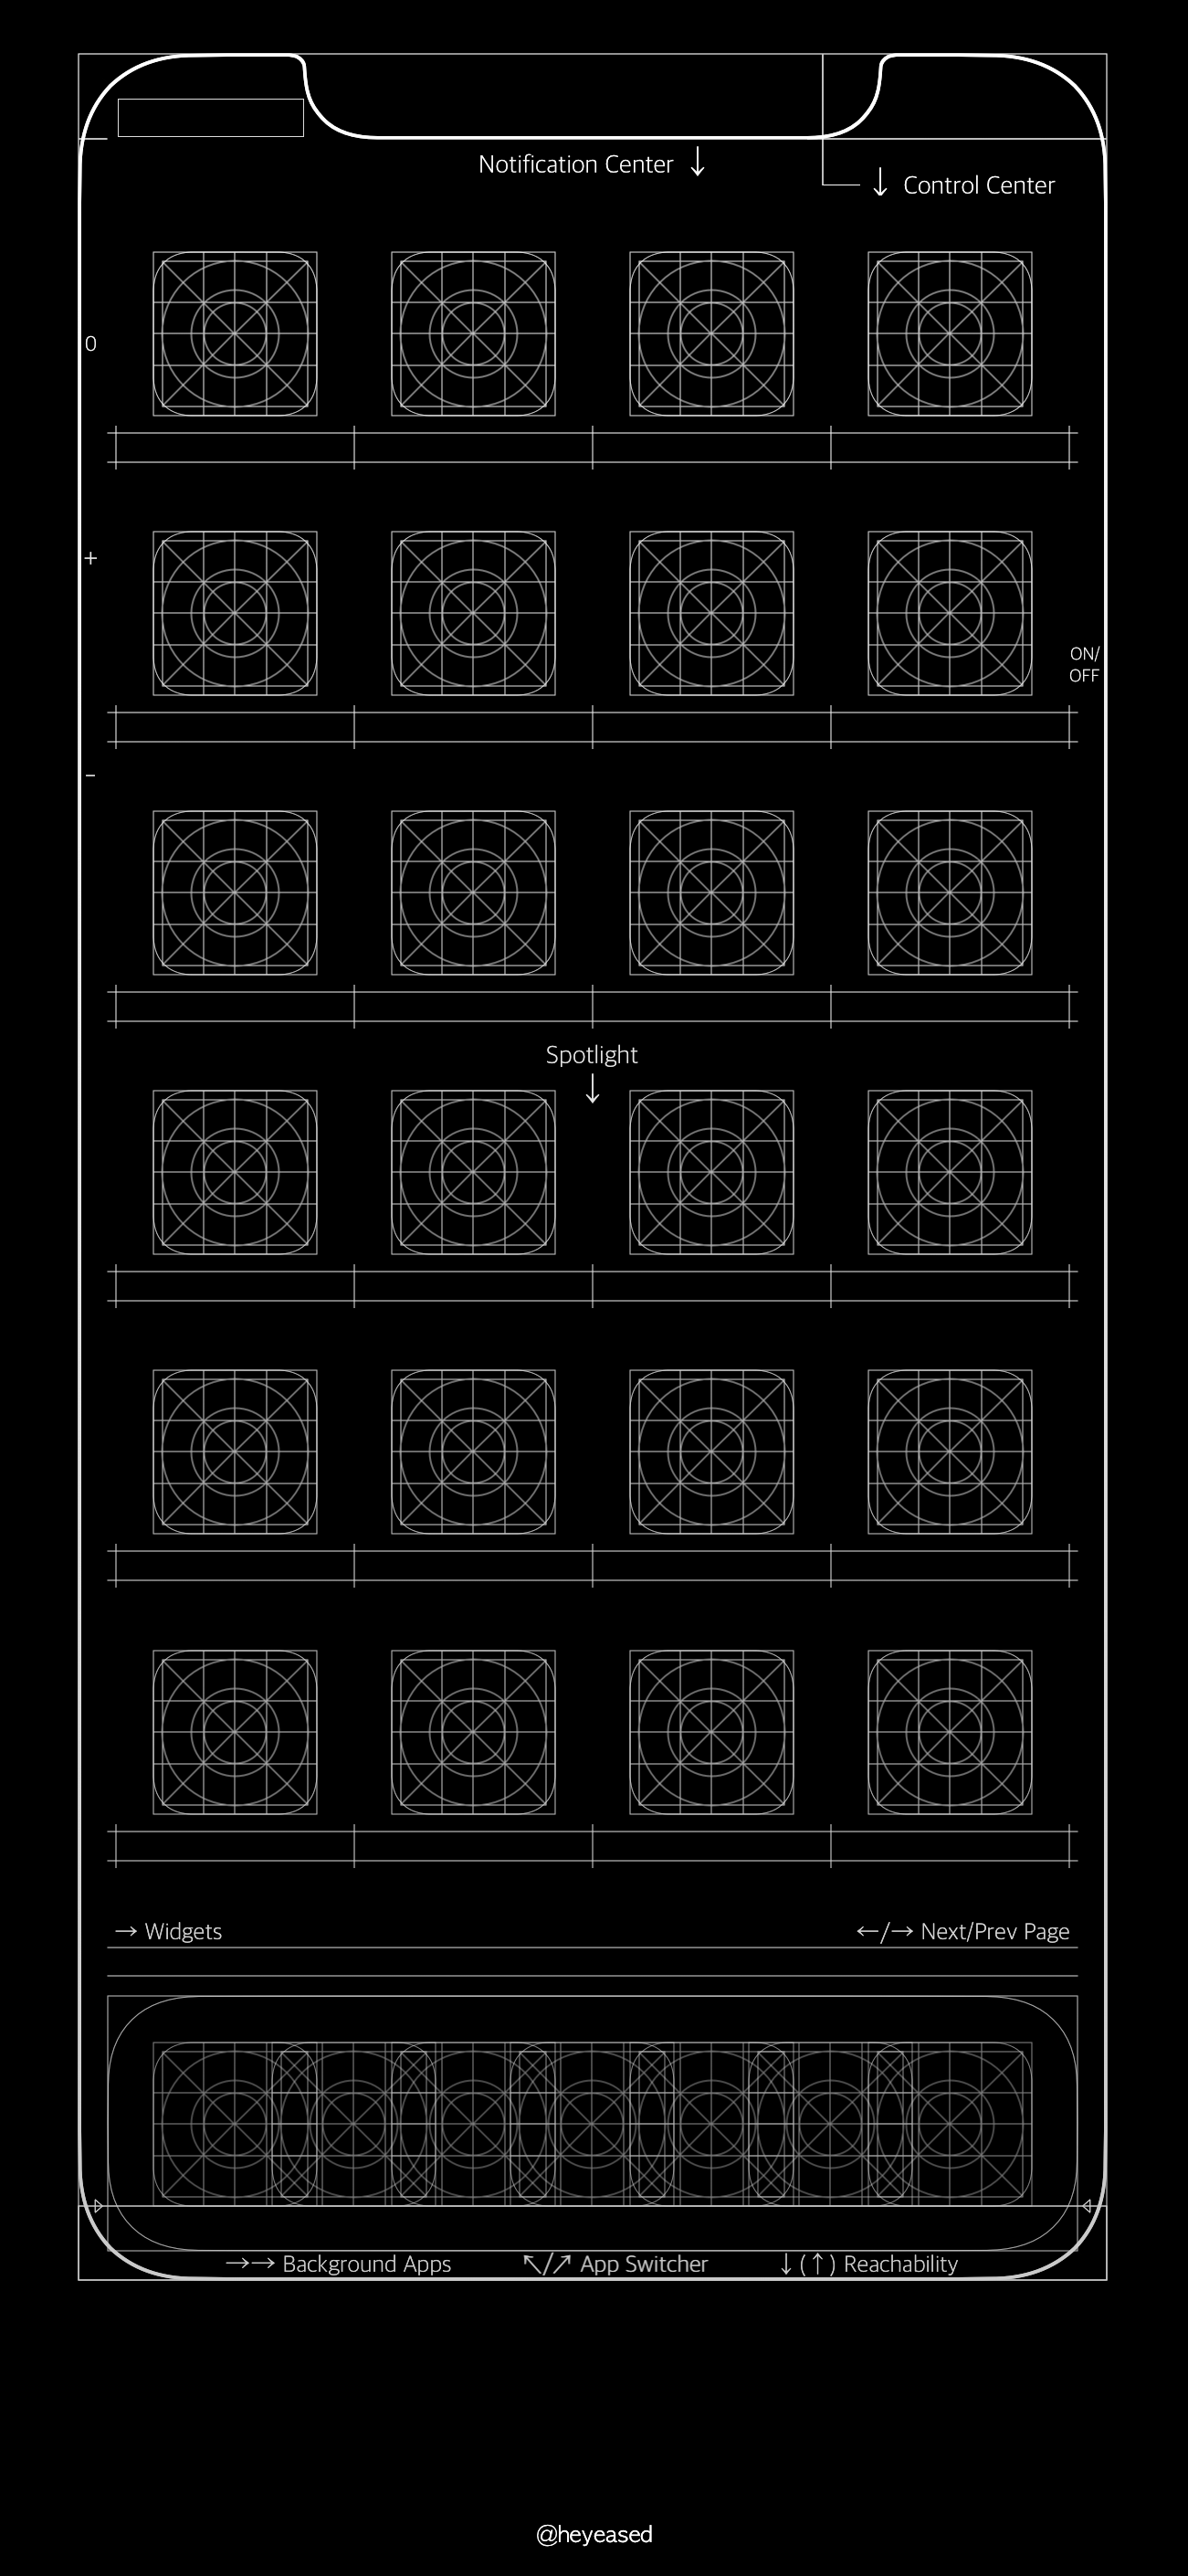 Grid And Blueprint Wallpapers For Iphone White Wallpaper For Iphone Iphone Homescreen Wallpaper Homescreen Iphone